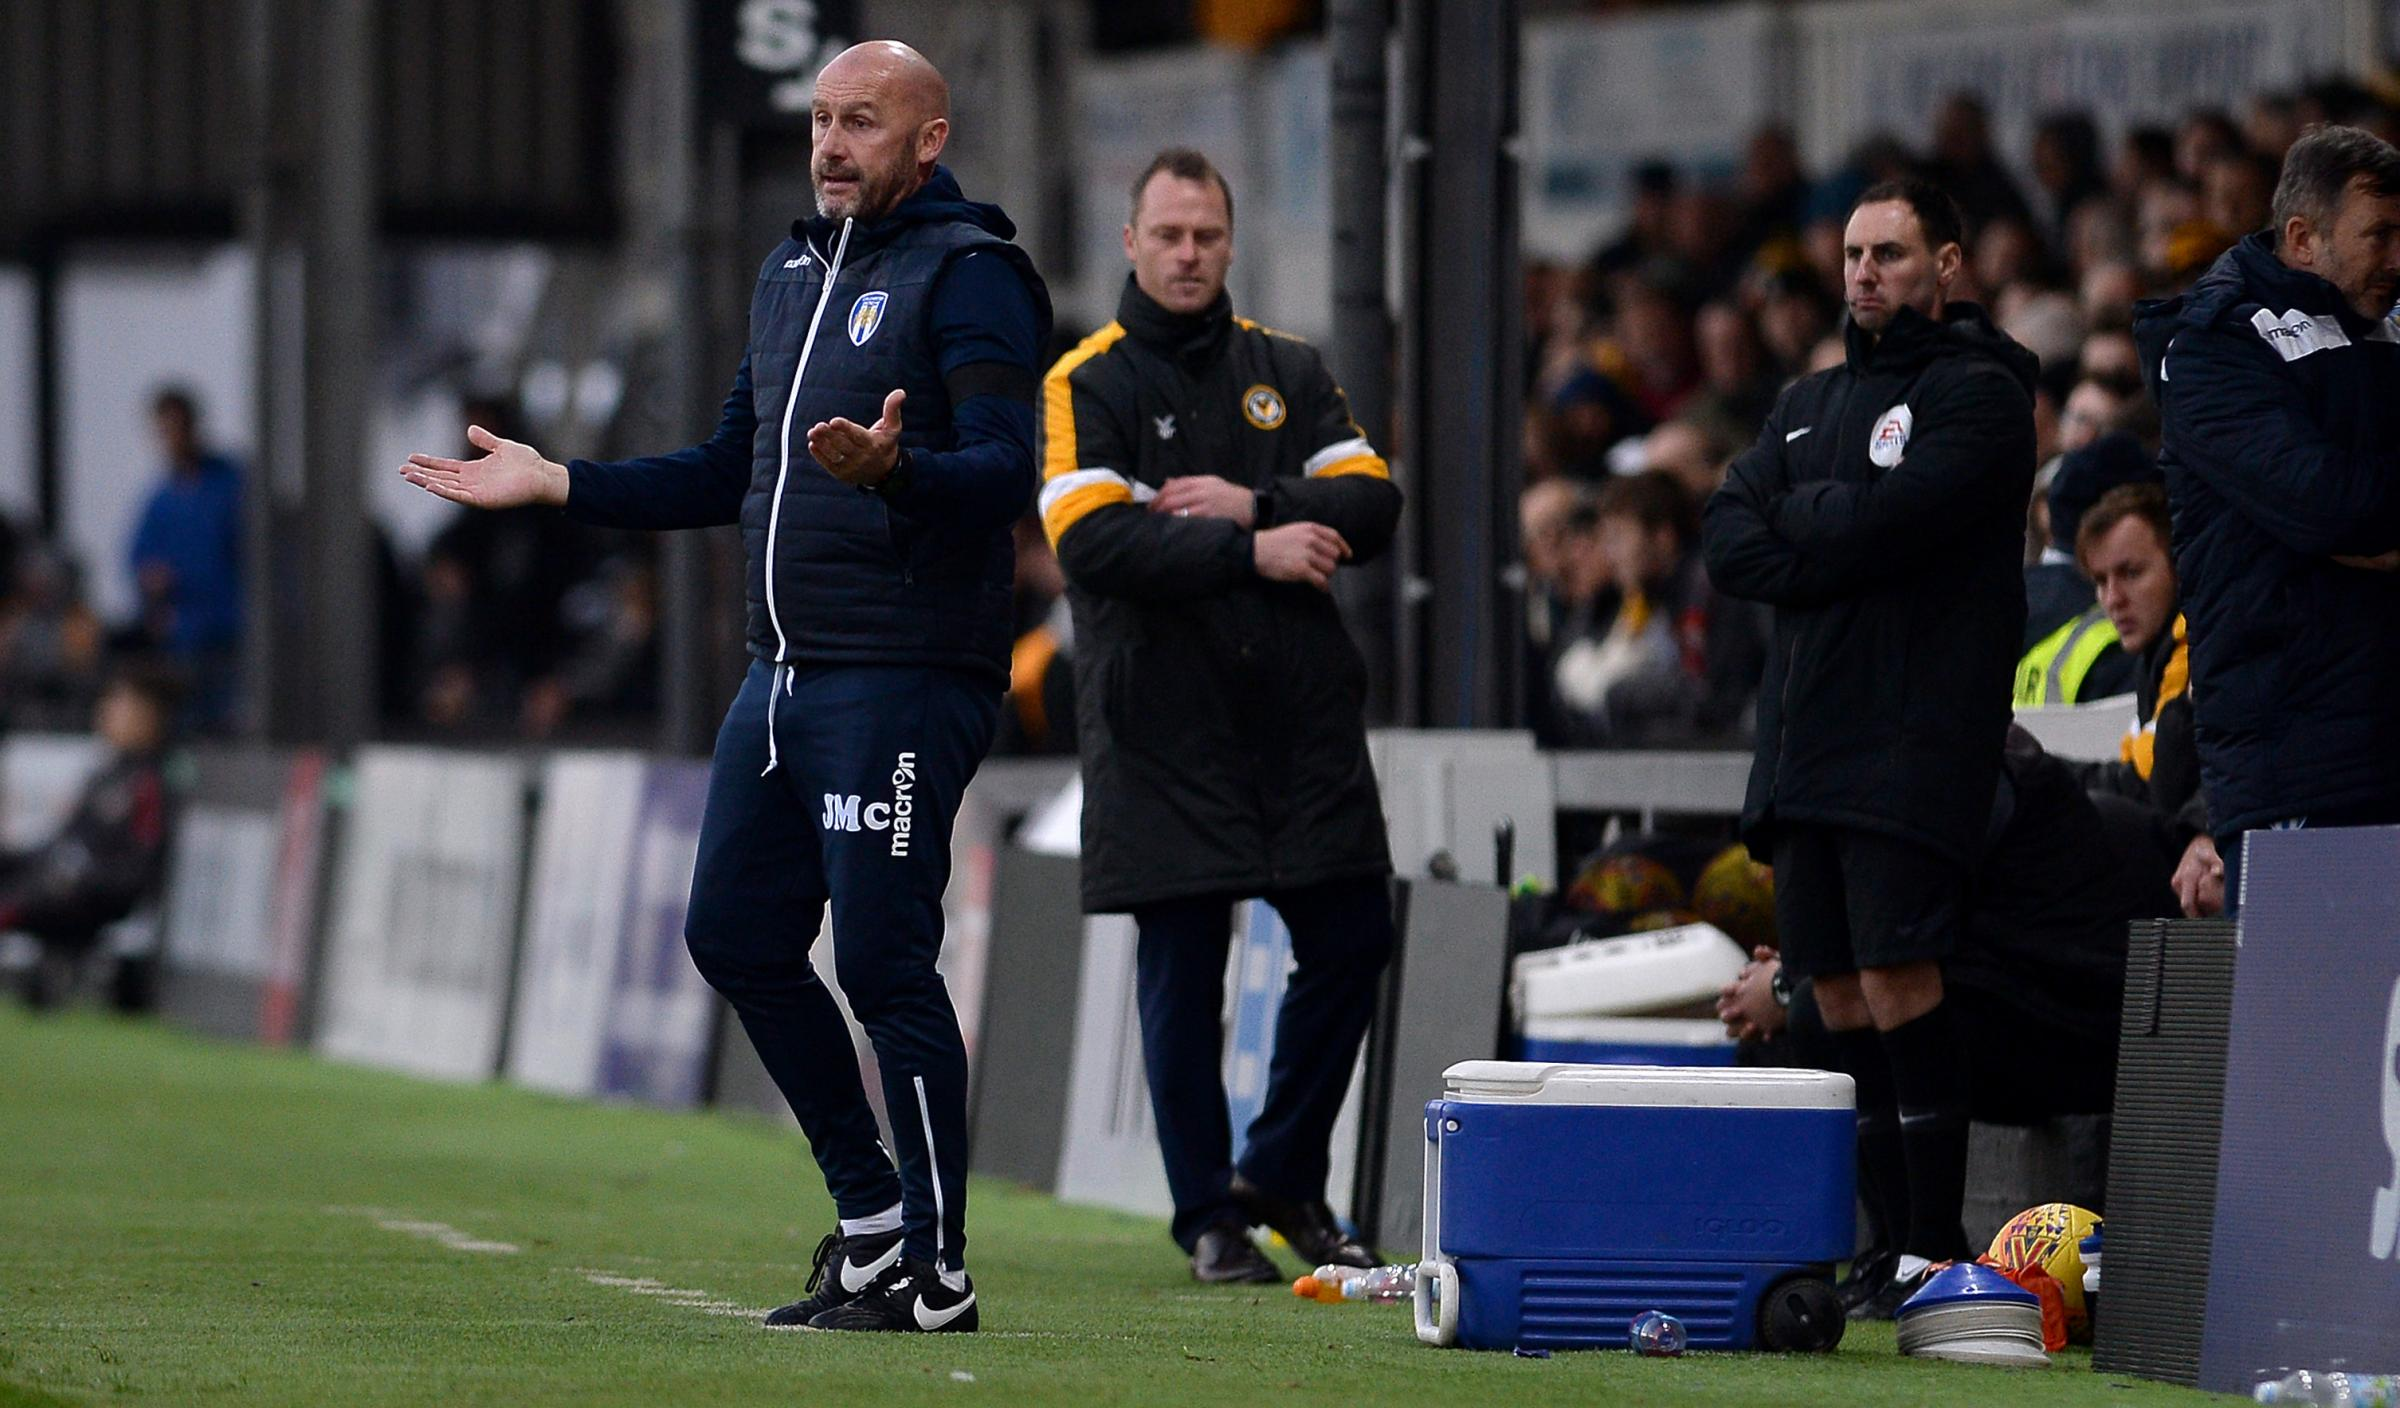 Friendly rivalry - Colchester United boss John McGreal with his Newport County counterpart Michael Flynn in the background during the U's 2-0 loss at Rodney Parade, last November Picture: PAGEPIX